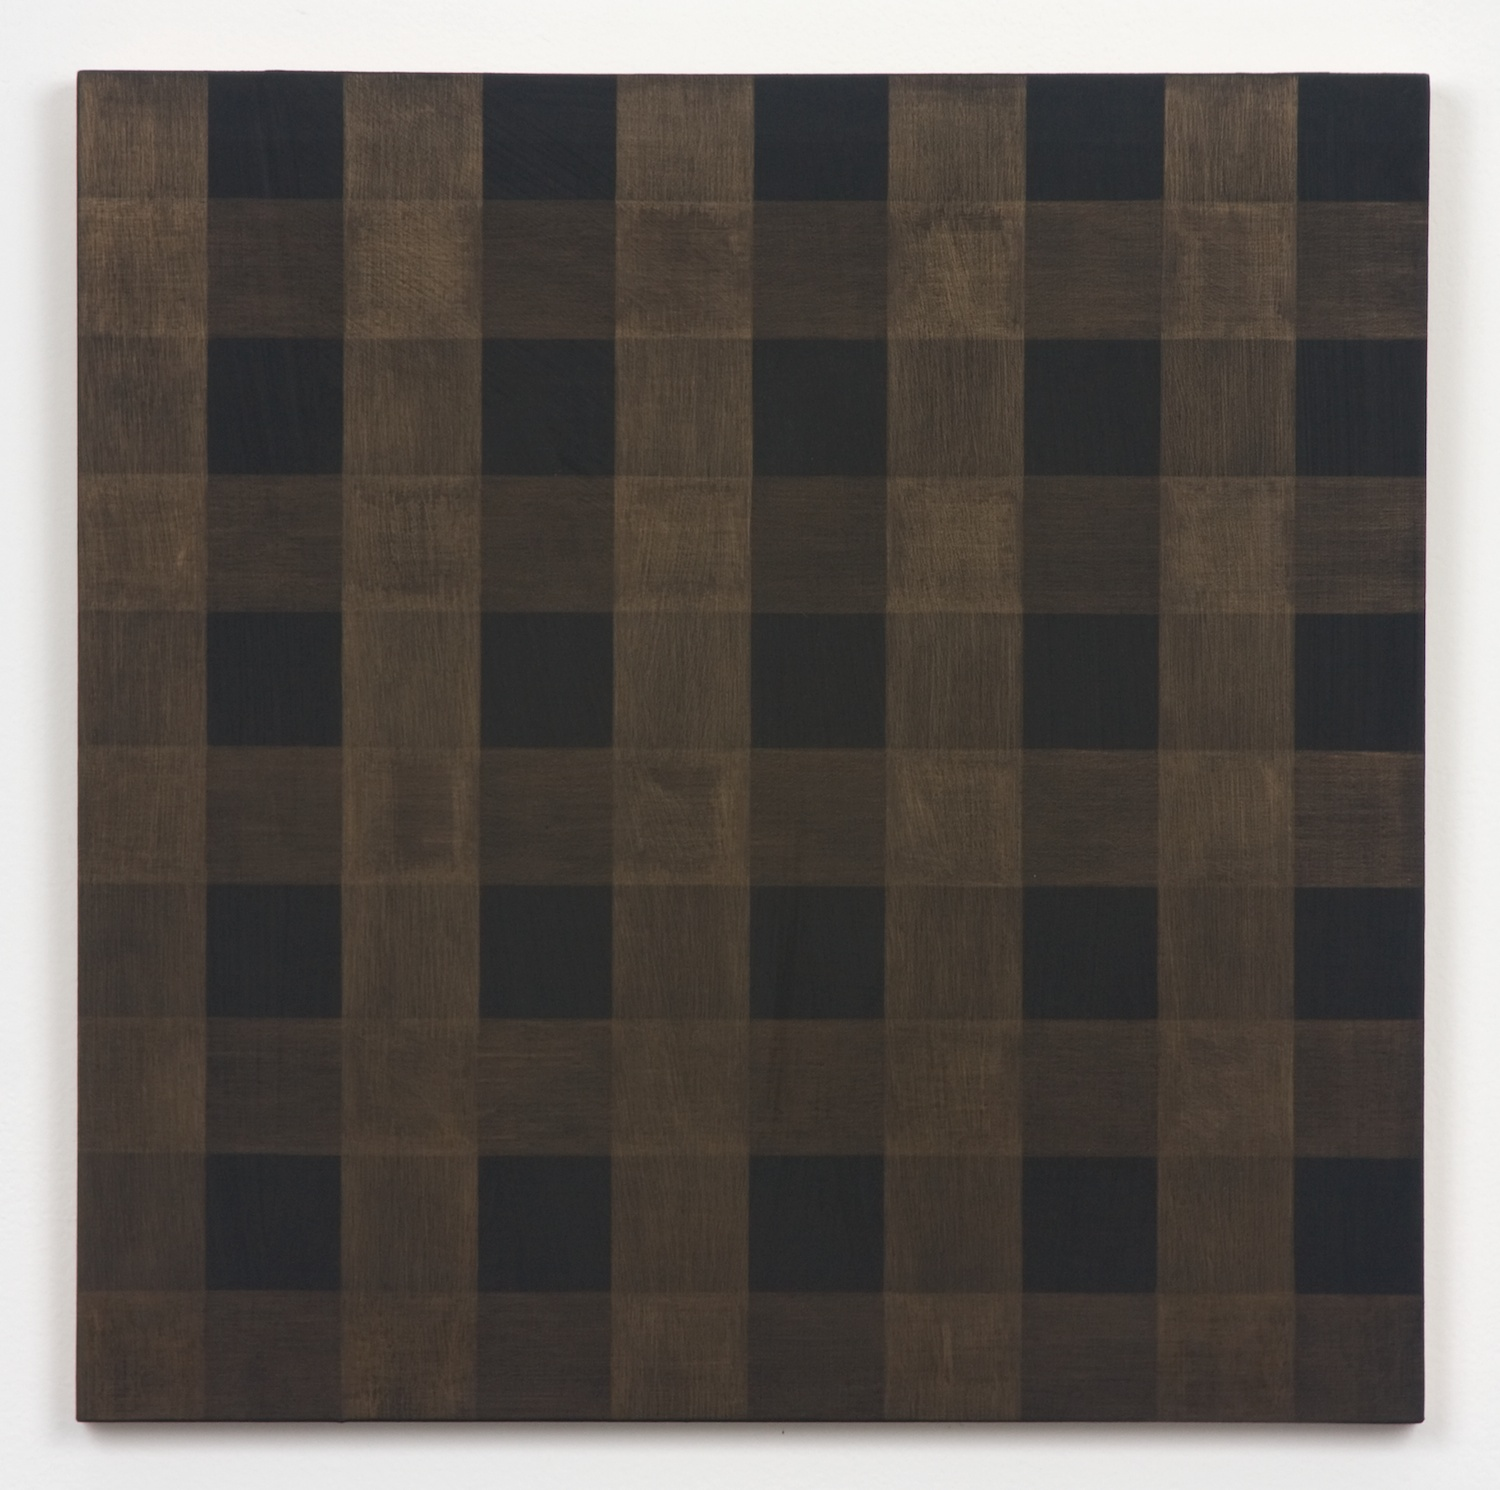 Michelle Grabner  Untitled  2010 Gold and gesso on panel 15h x 15w in MGrab173